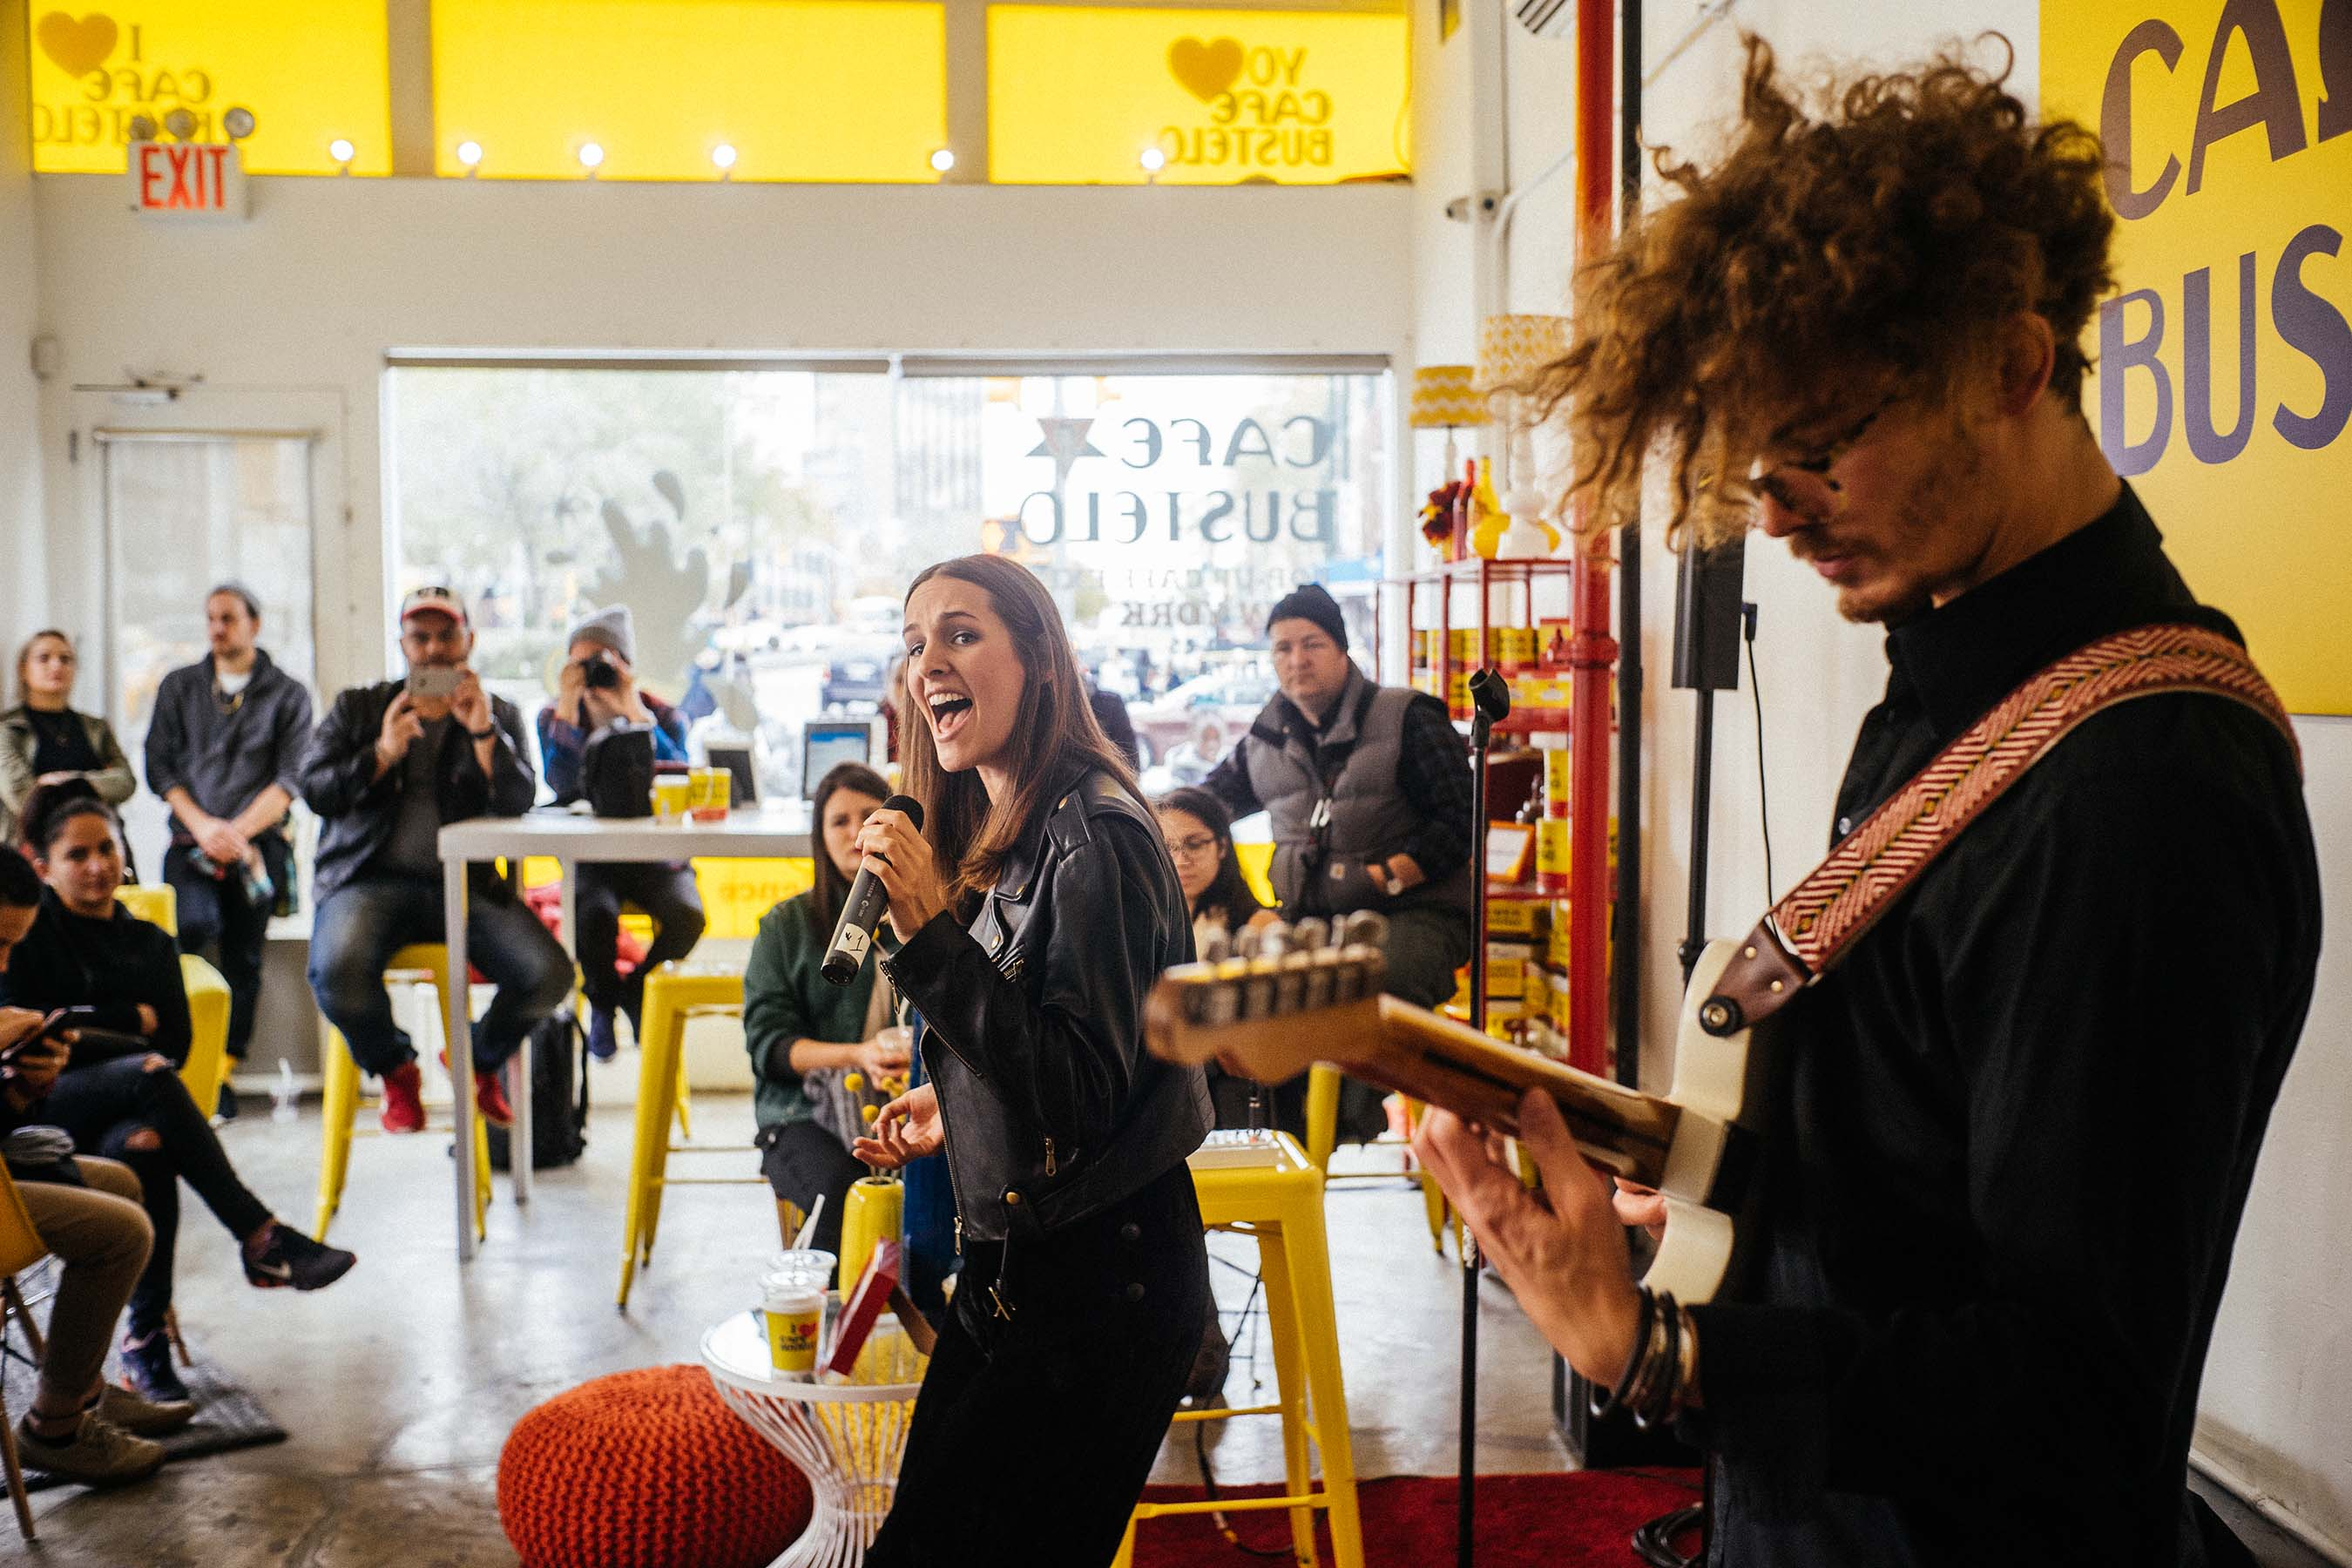 Communities can gather at pop-up cafés to celebrate life with free music, free Wi-Fi and flavorful Café Bustelo Coffee.